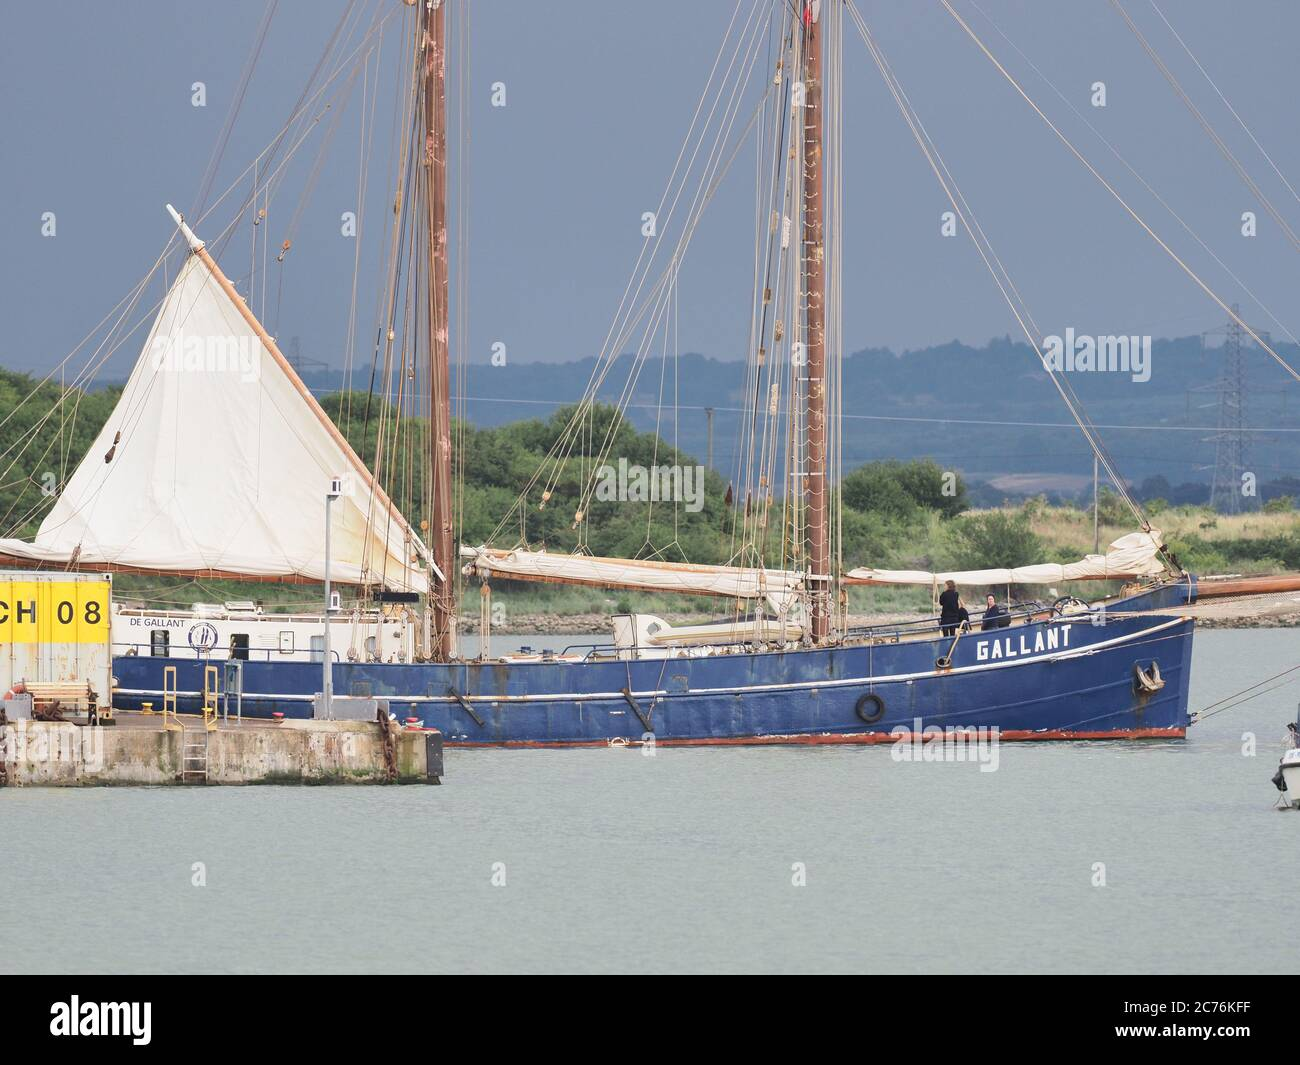 queenborough kent uk 14th july 2020 eco friendly dutch built schooner de gallant arriving in queenborough the ship is part of a sail cargo project an environmentally friendly and largely carbon neutral alamy